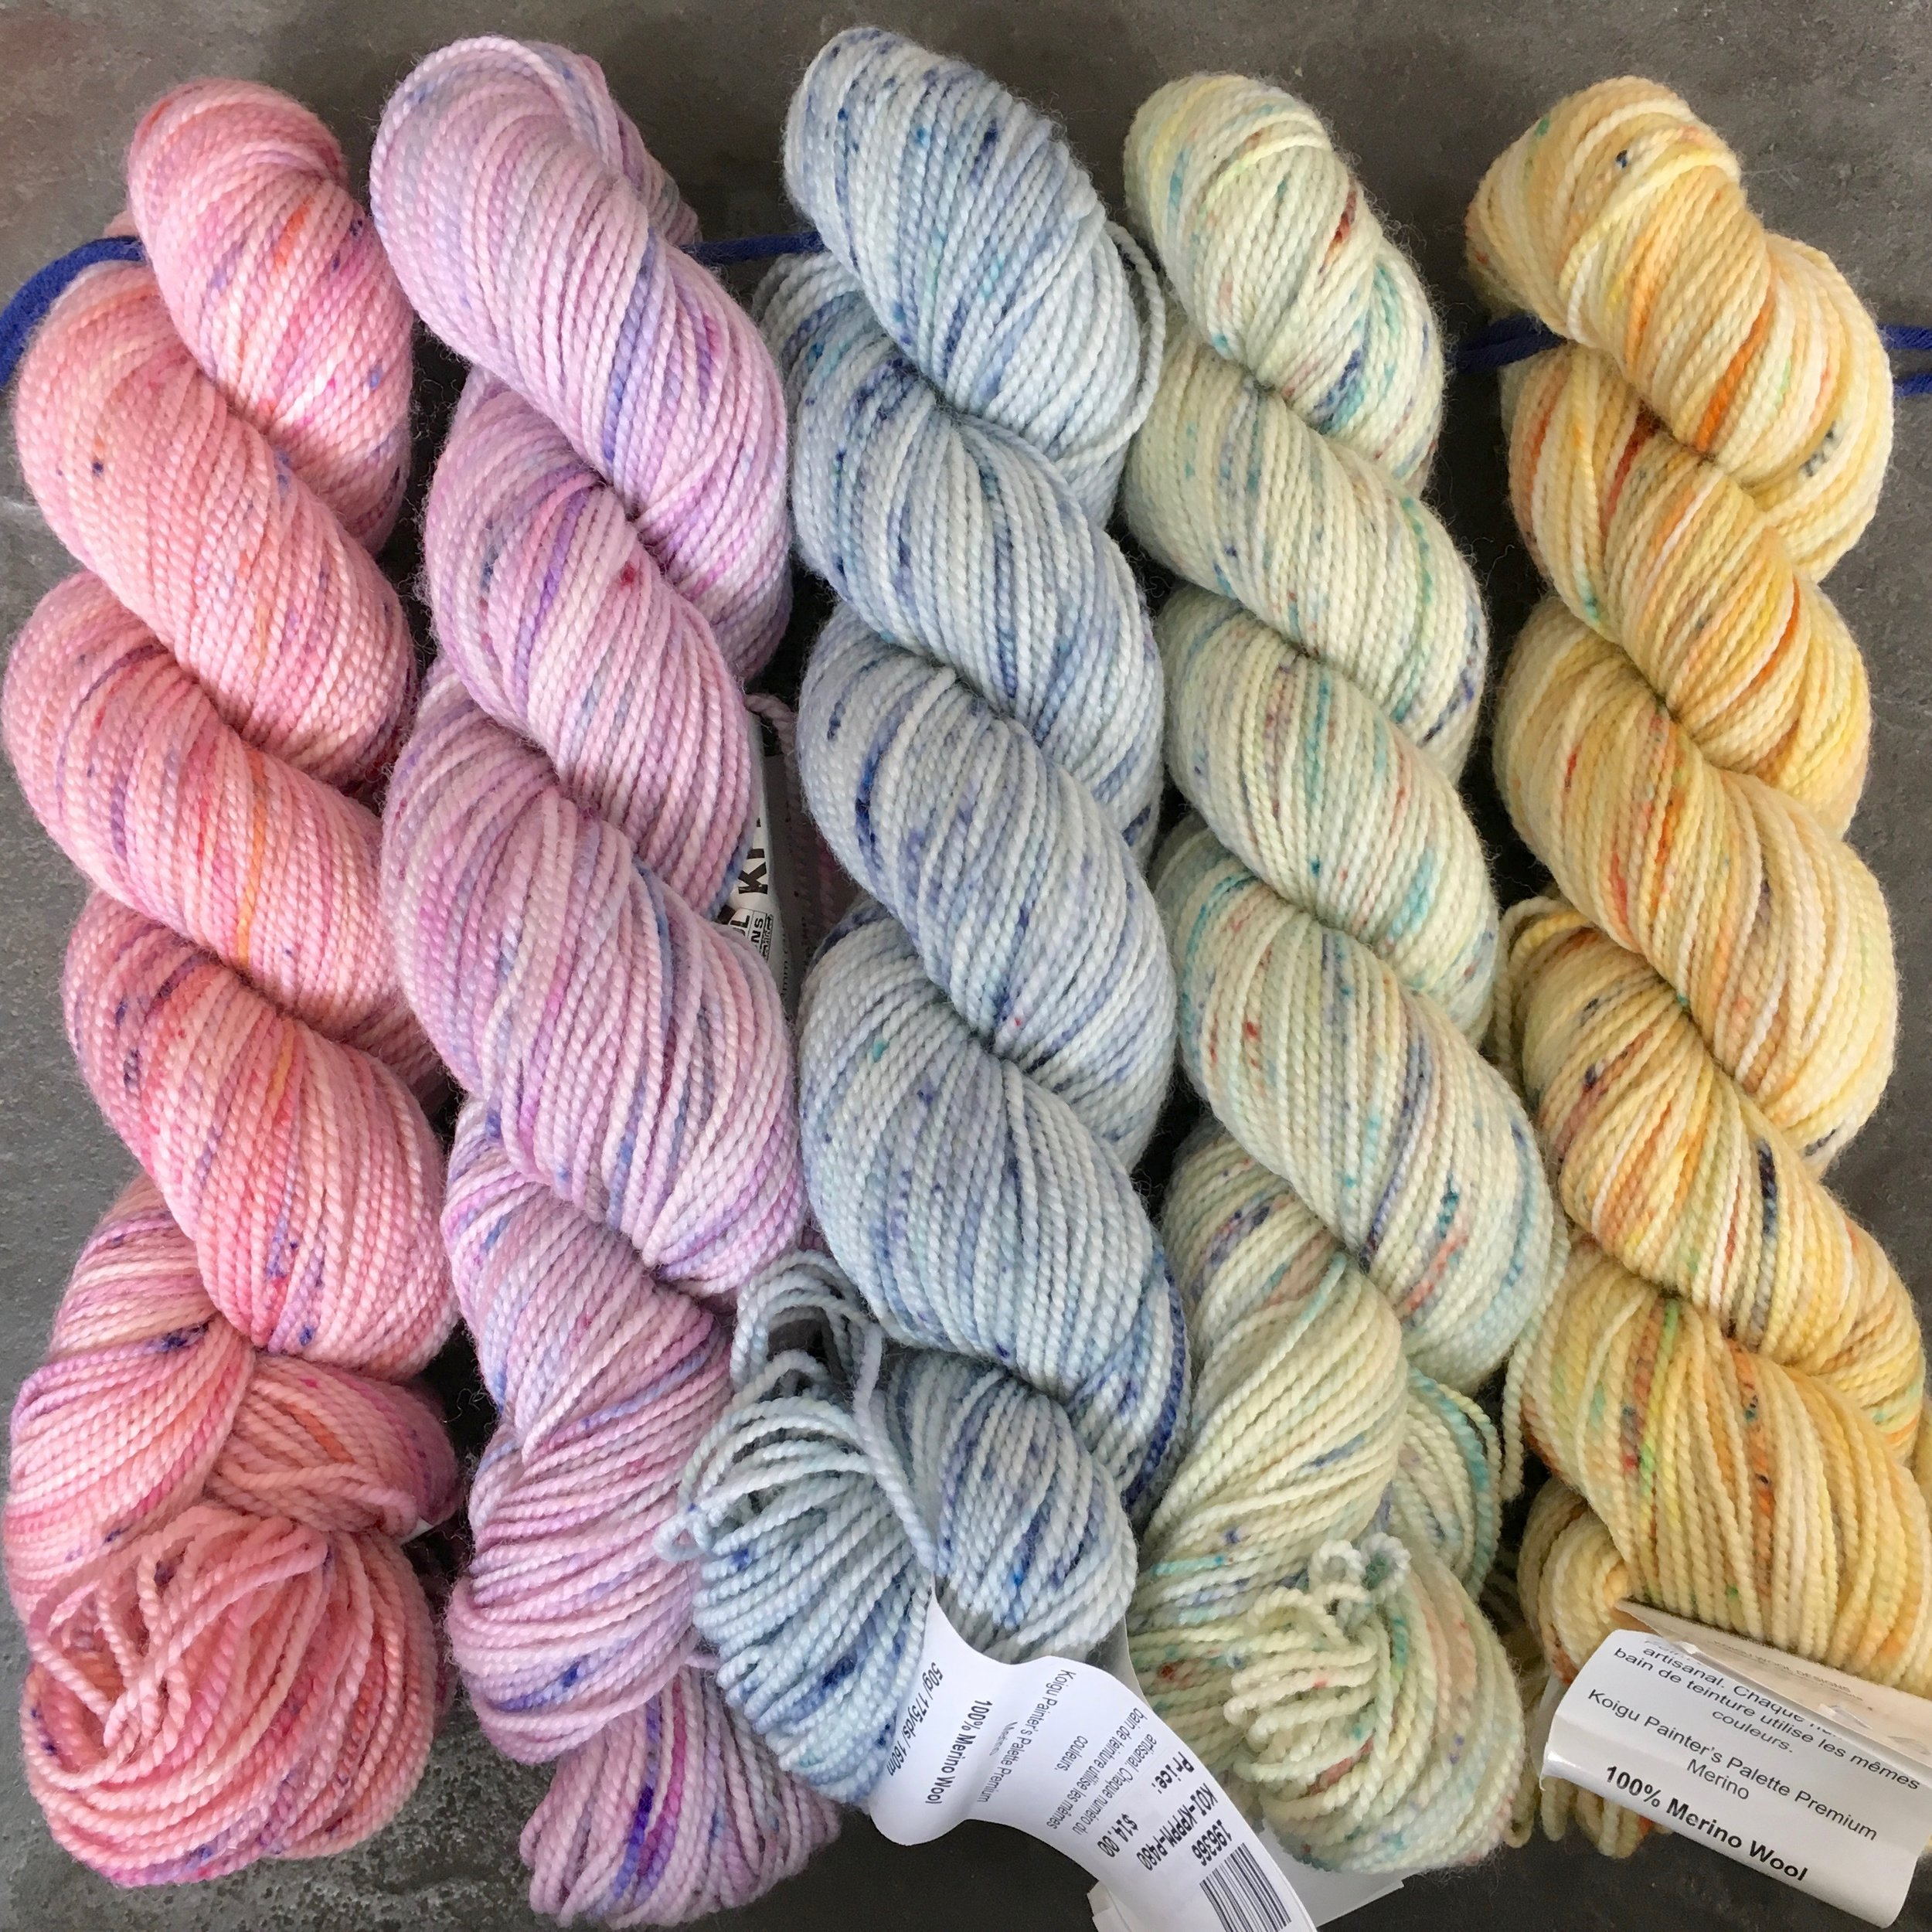 Left to right: colors P204C, 0029 (dyed for Webs), P480, P516, and P344